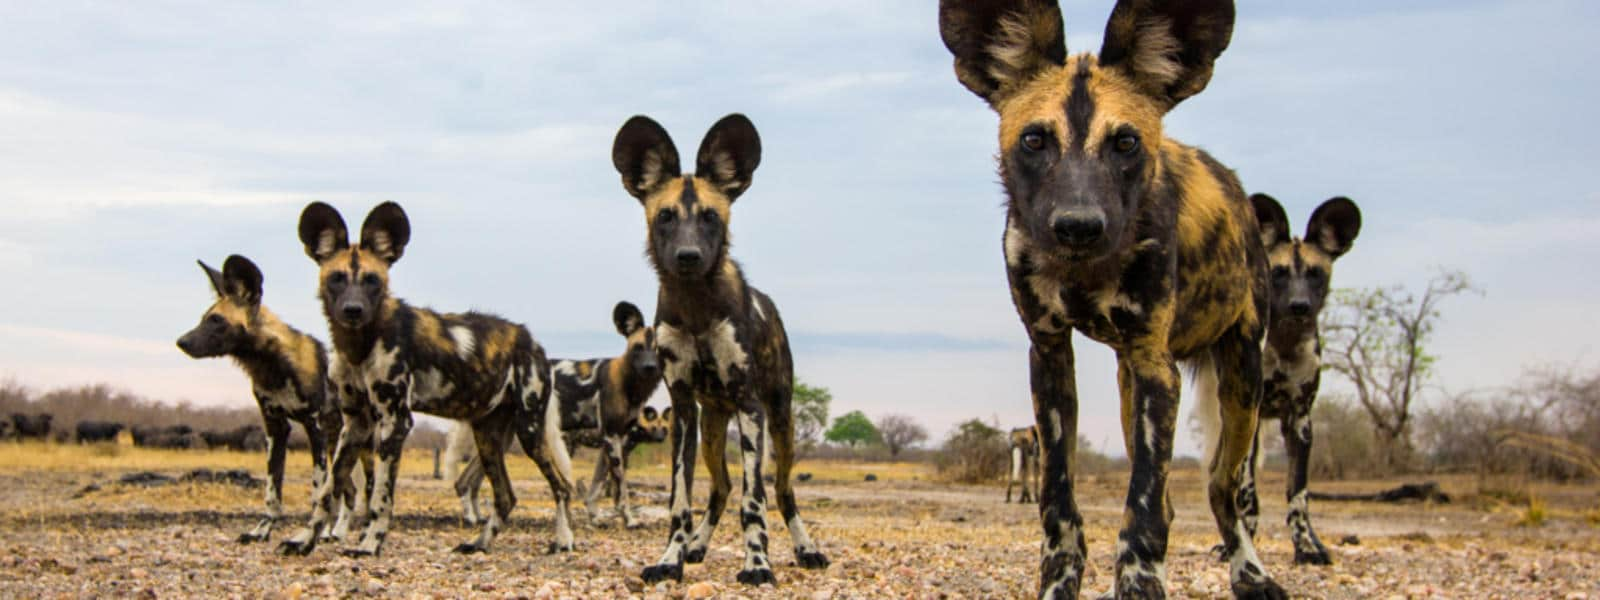 wild dogs african